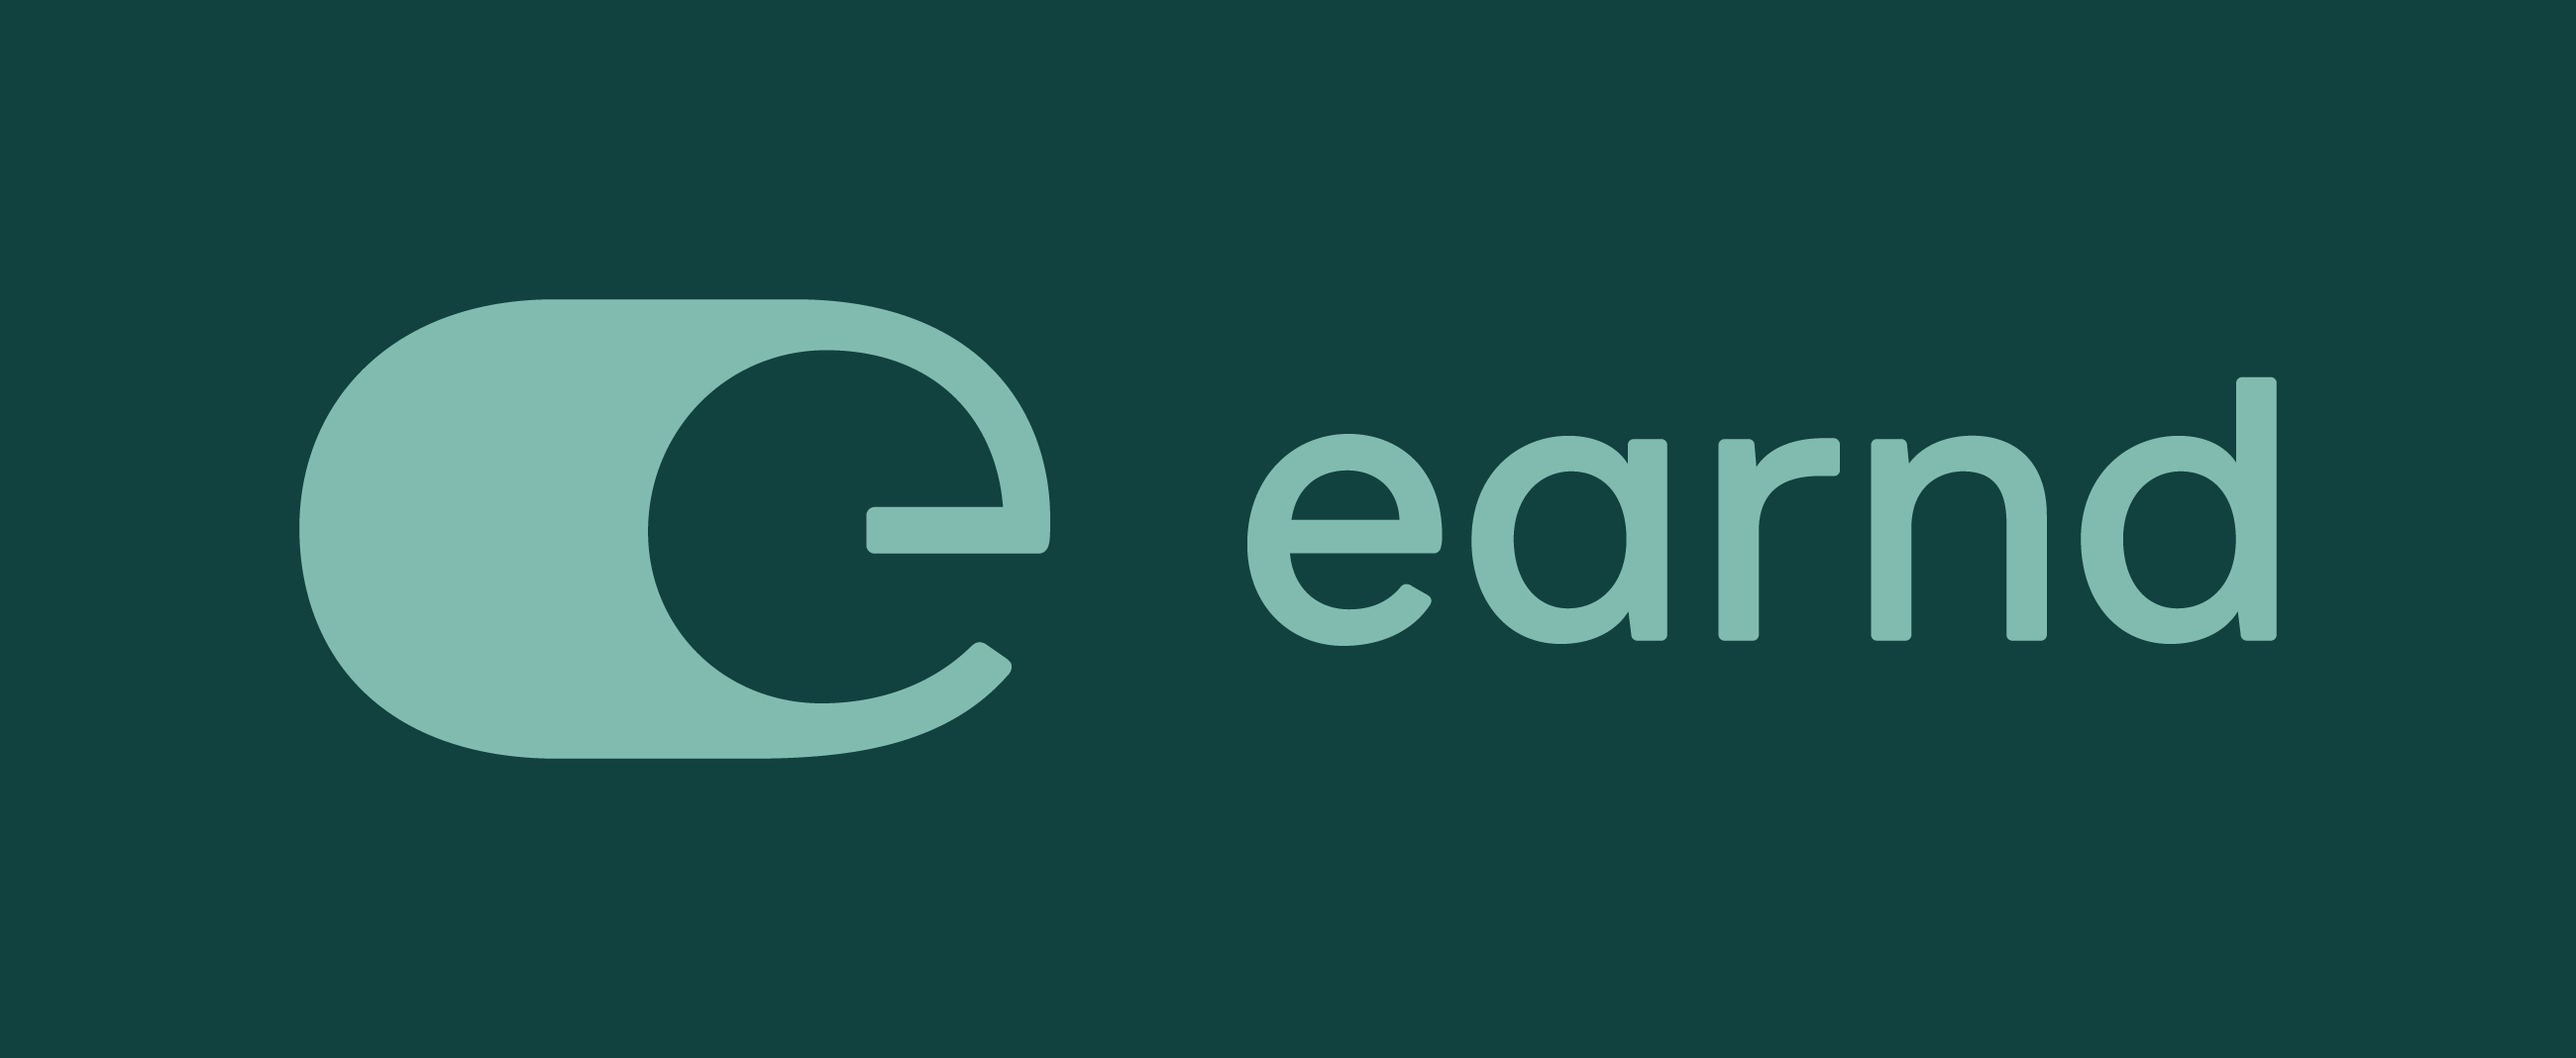 New Logo and Identity for Earnd by venturethree